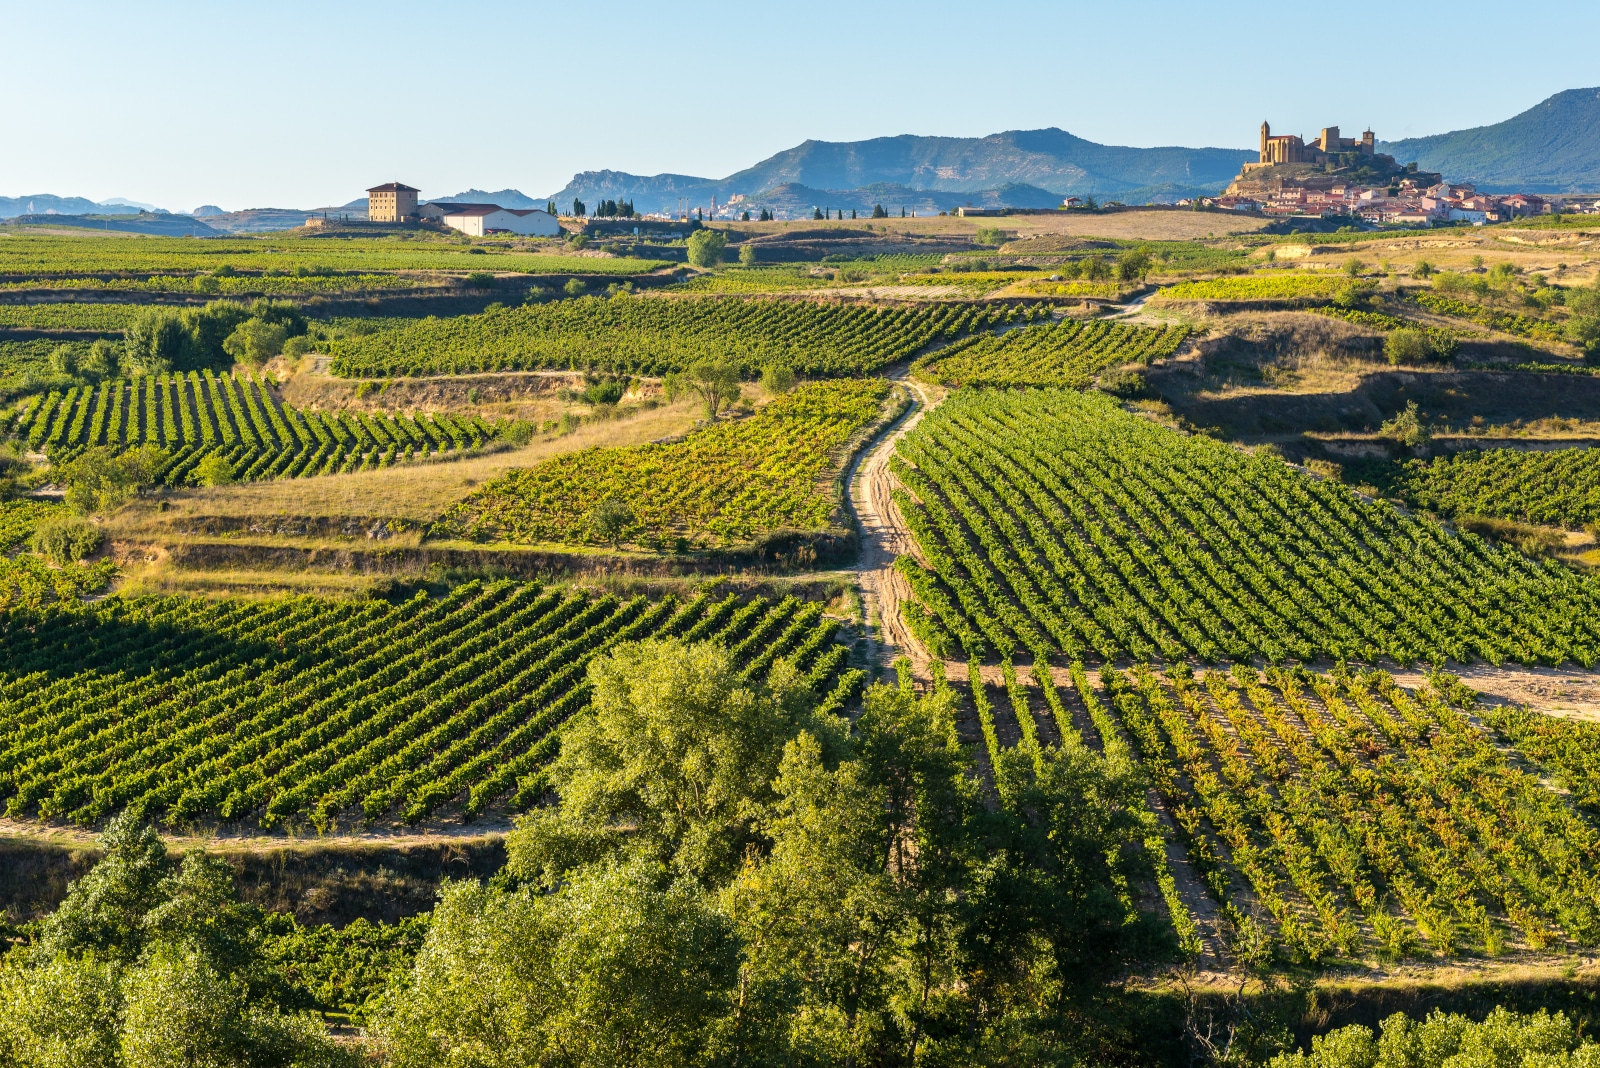 Where Does Tempranillo Come From